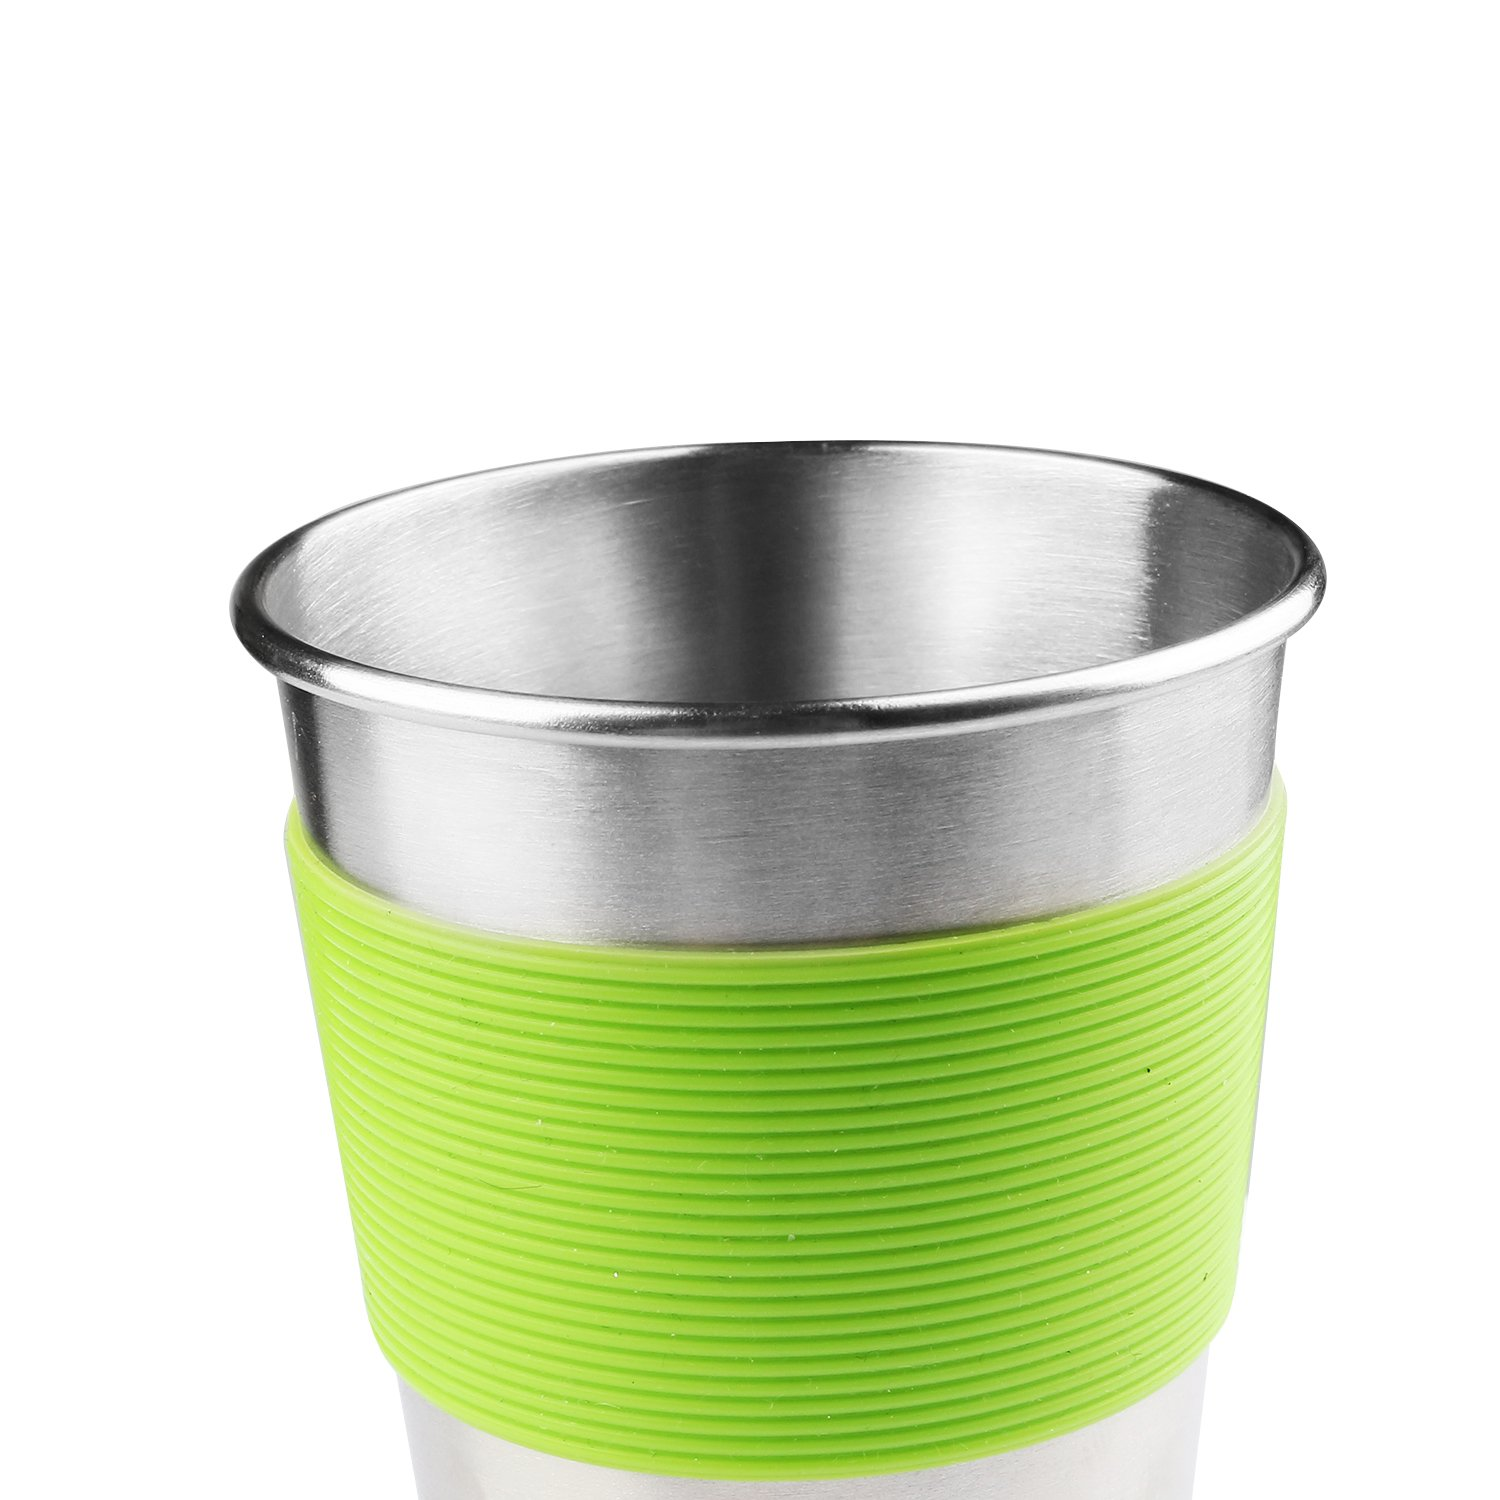 Kids Stainless Steel Cups With Silicone Lids & Sleeves, Kereda 5 Pack 11 3/4 oz. Drinking Tumblers Eco-Friendly BPA-Free for Adults, Children and Toddlers by KEREDA (Image #4)